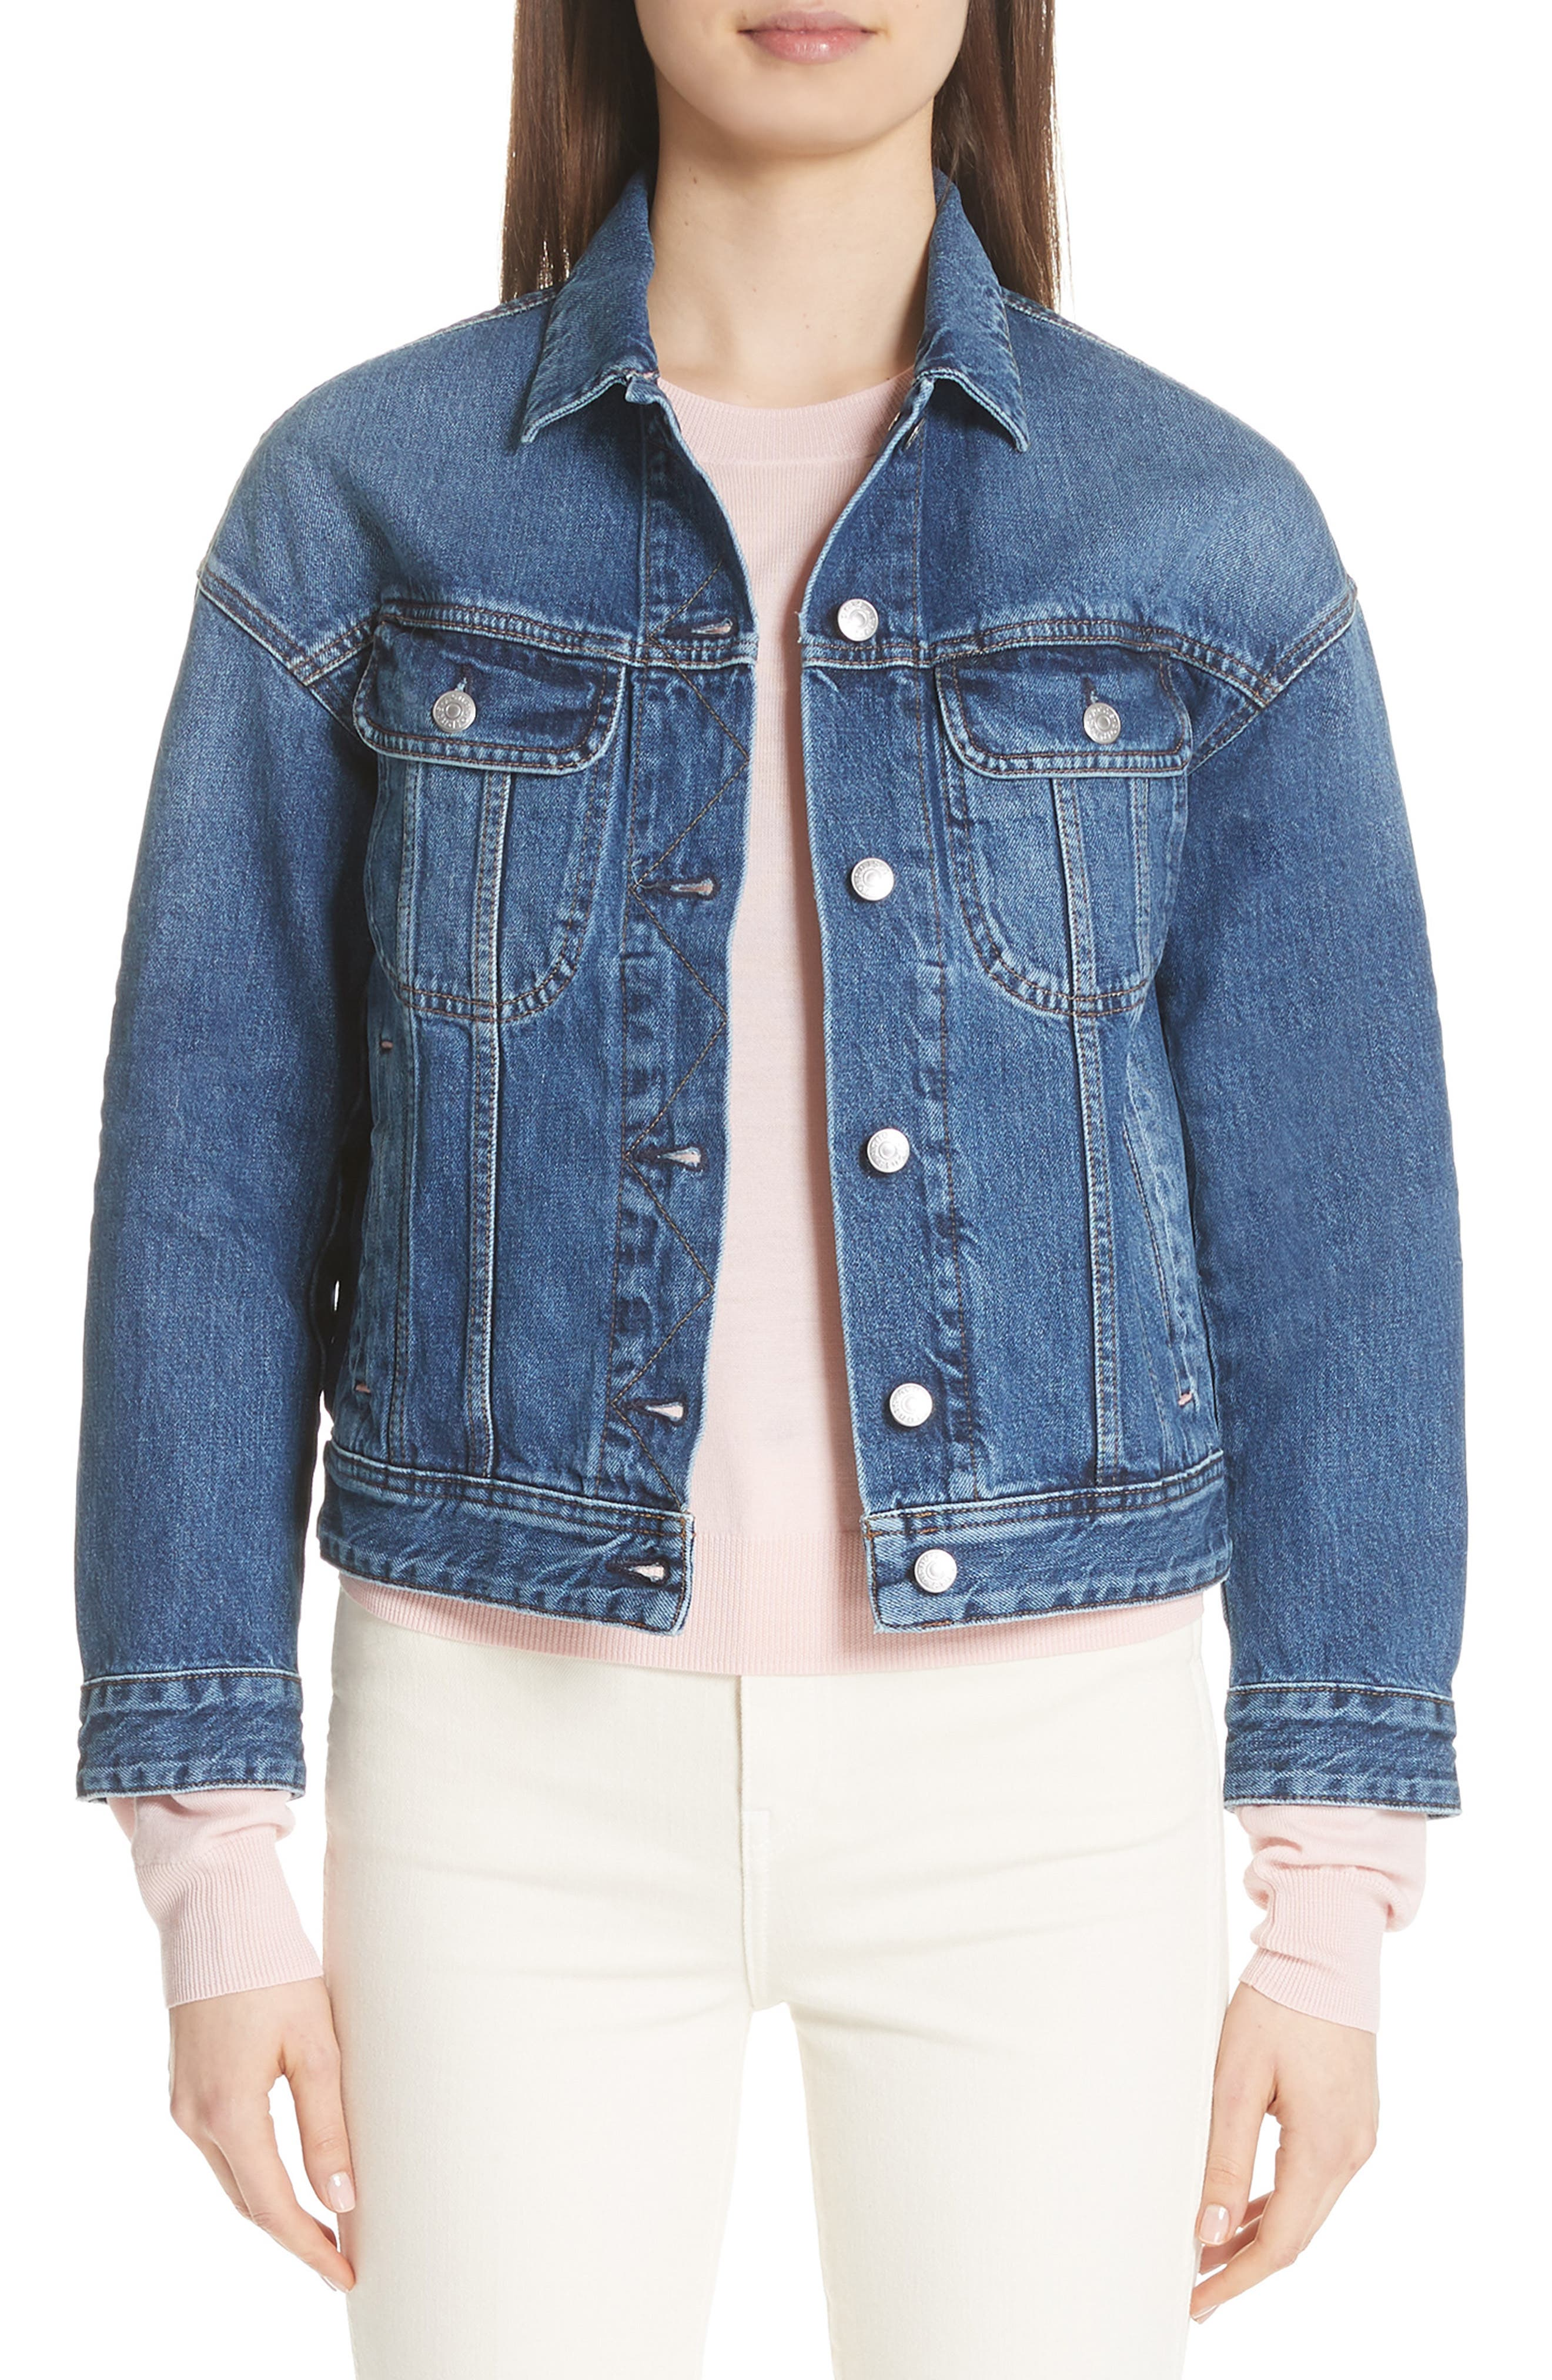 Lamp Denim Jacket,                         Main,                         color, 400